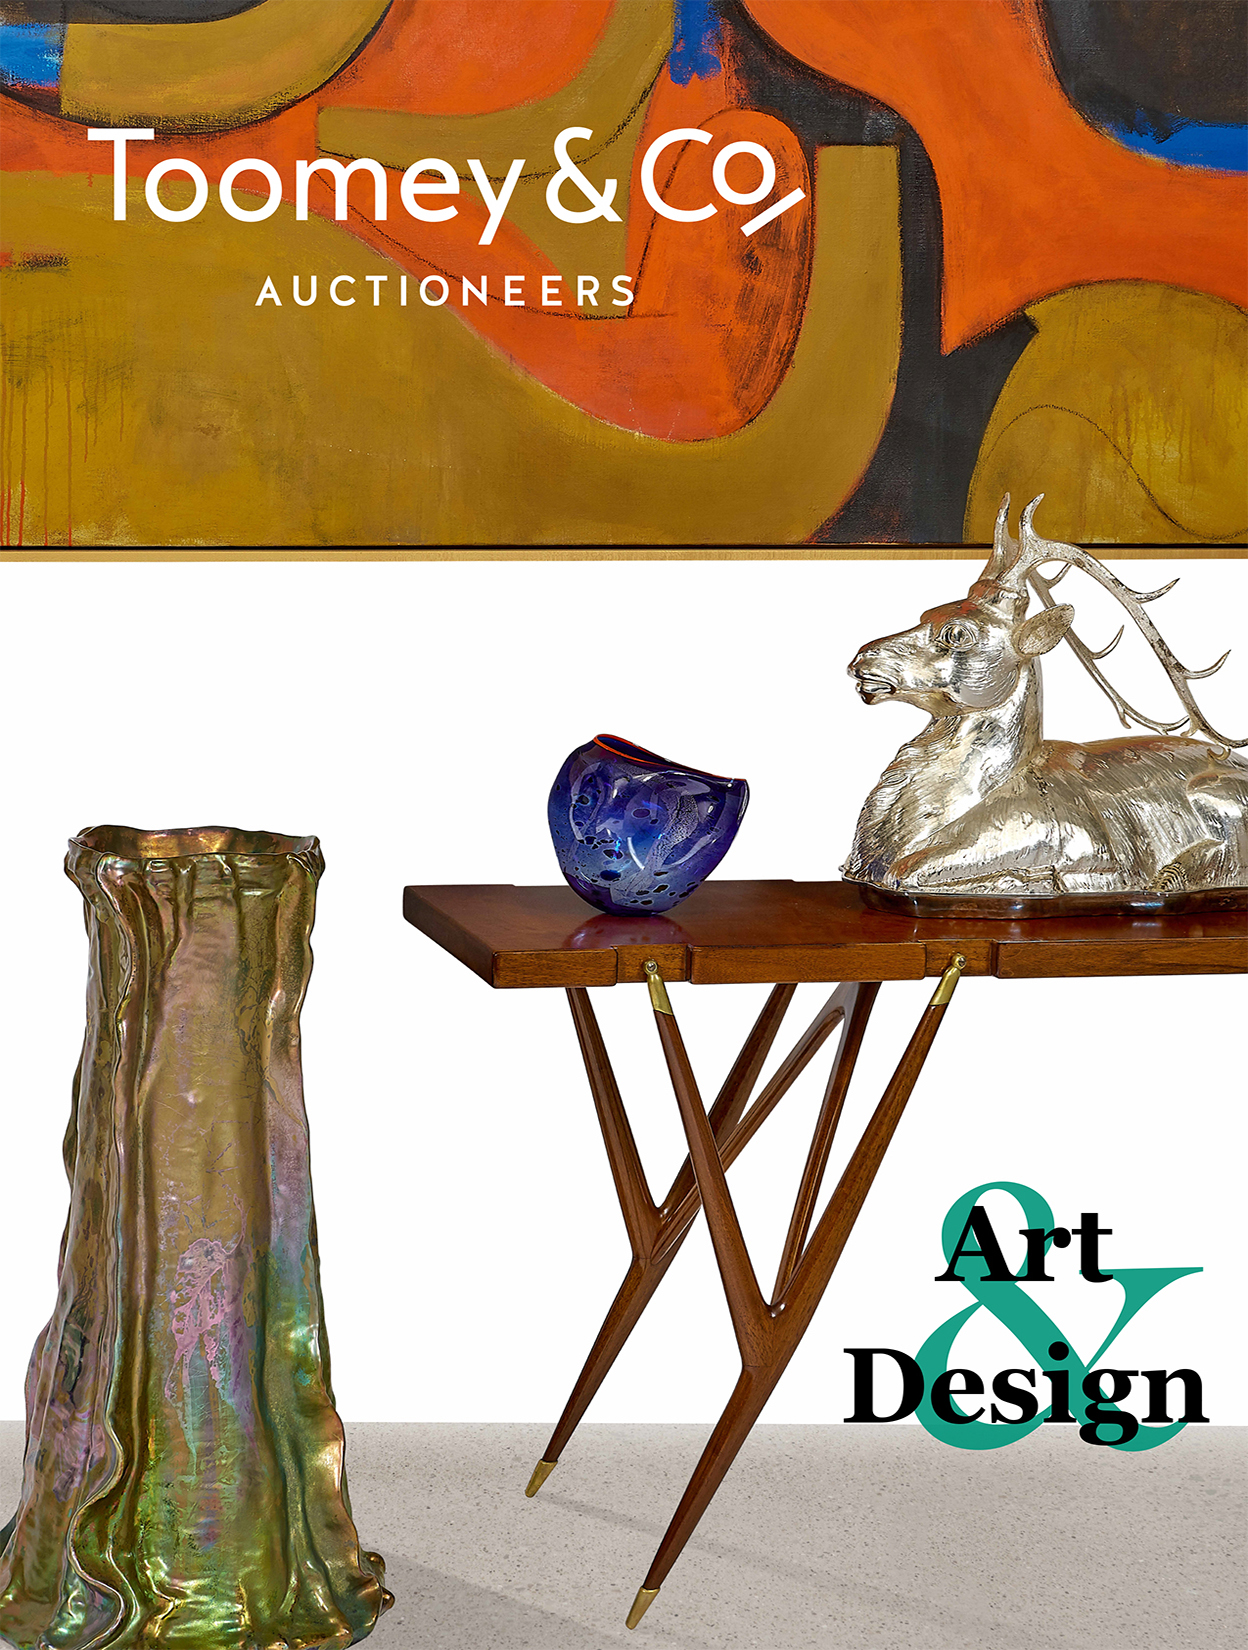 Sale 119, Art and Design, Auction Catalog, June 9, 2019